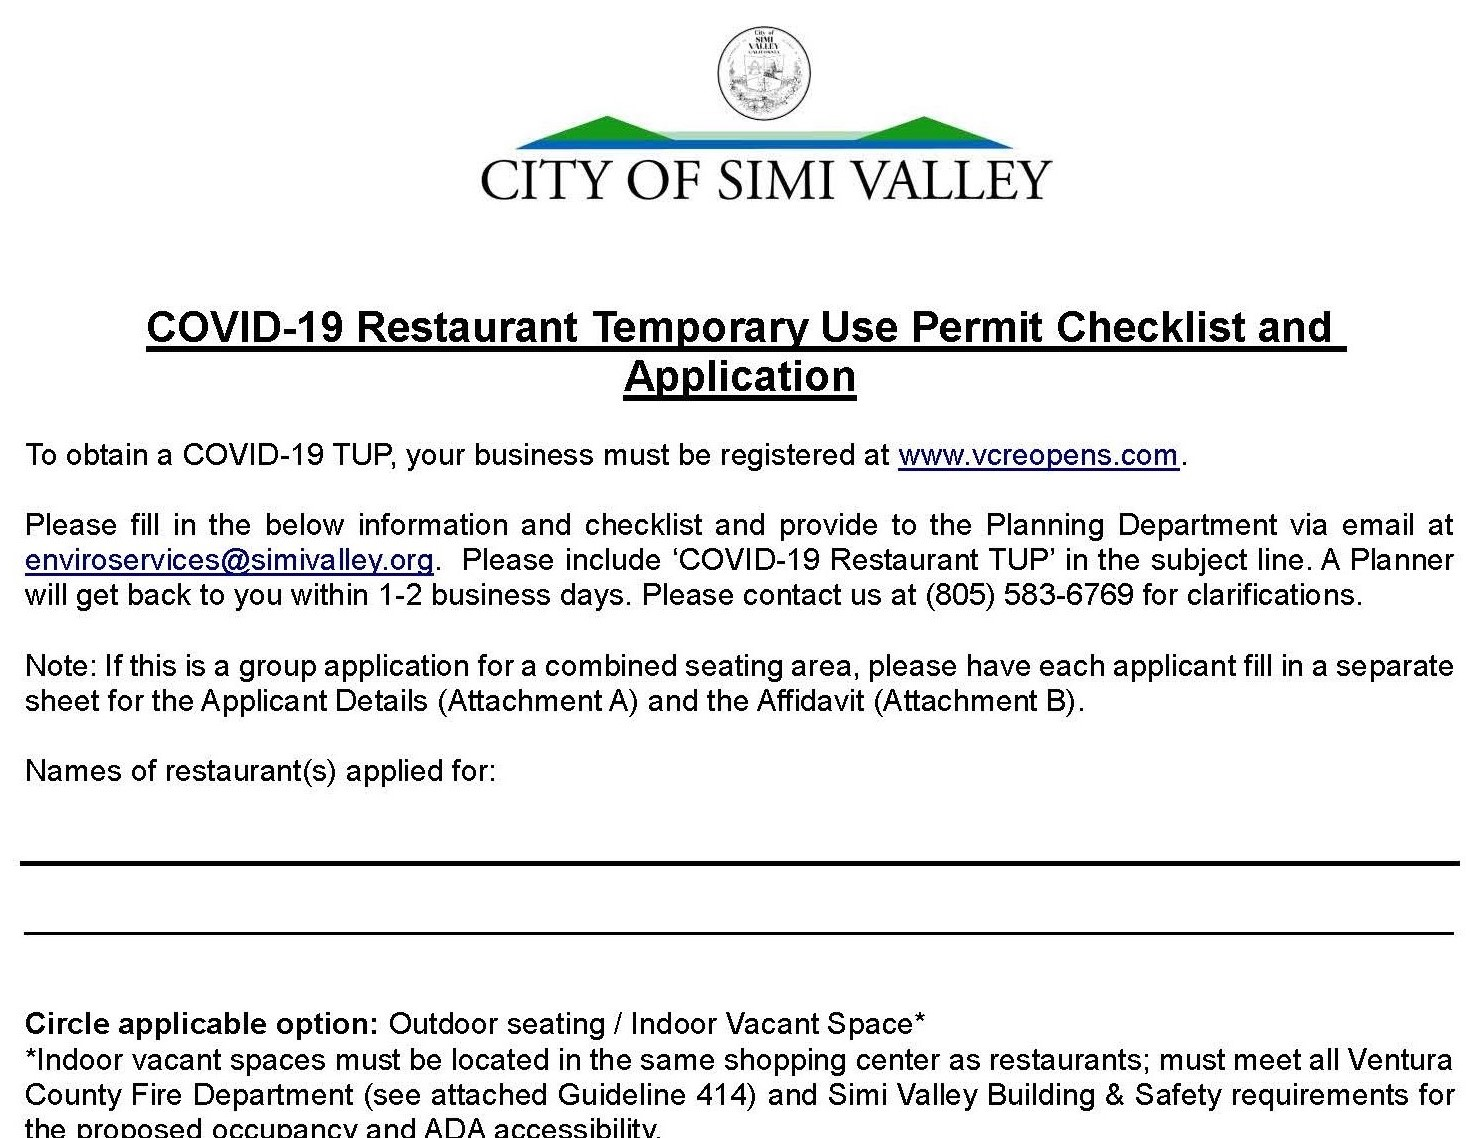 COVID-19 Restaurant Temporary Use Permit Checklist and Application